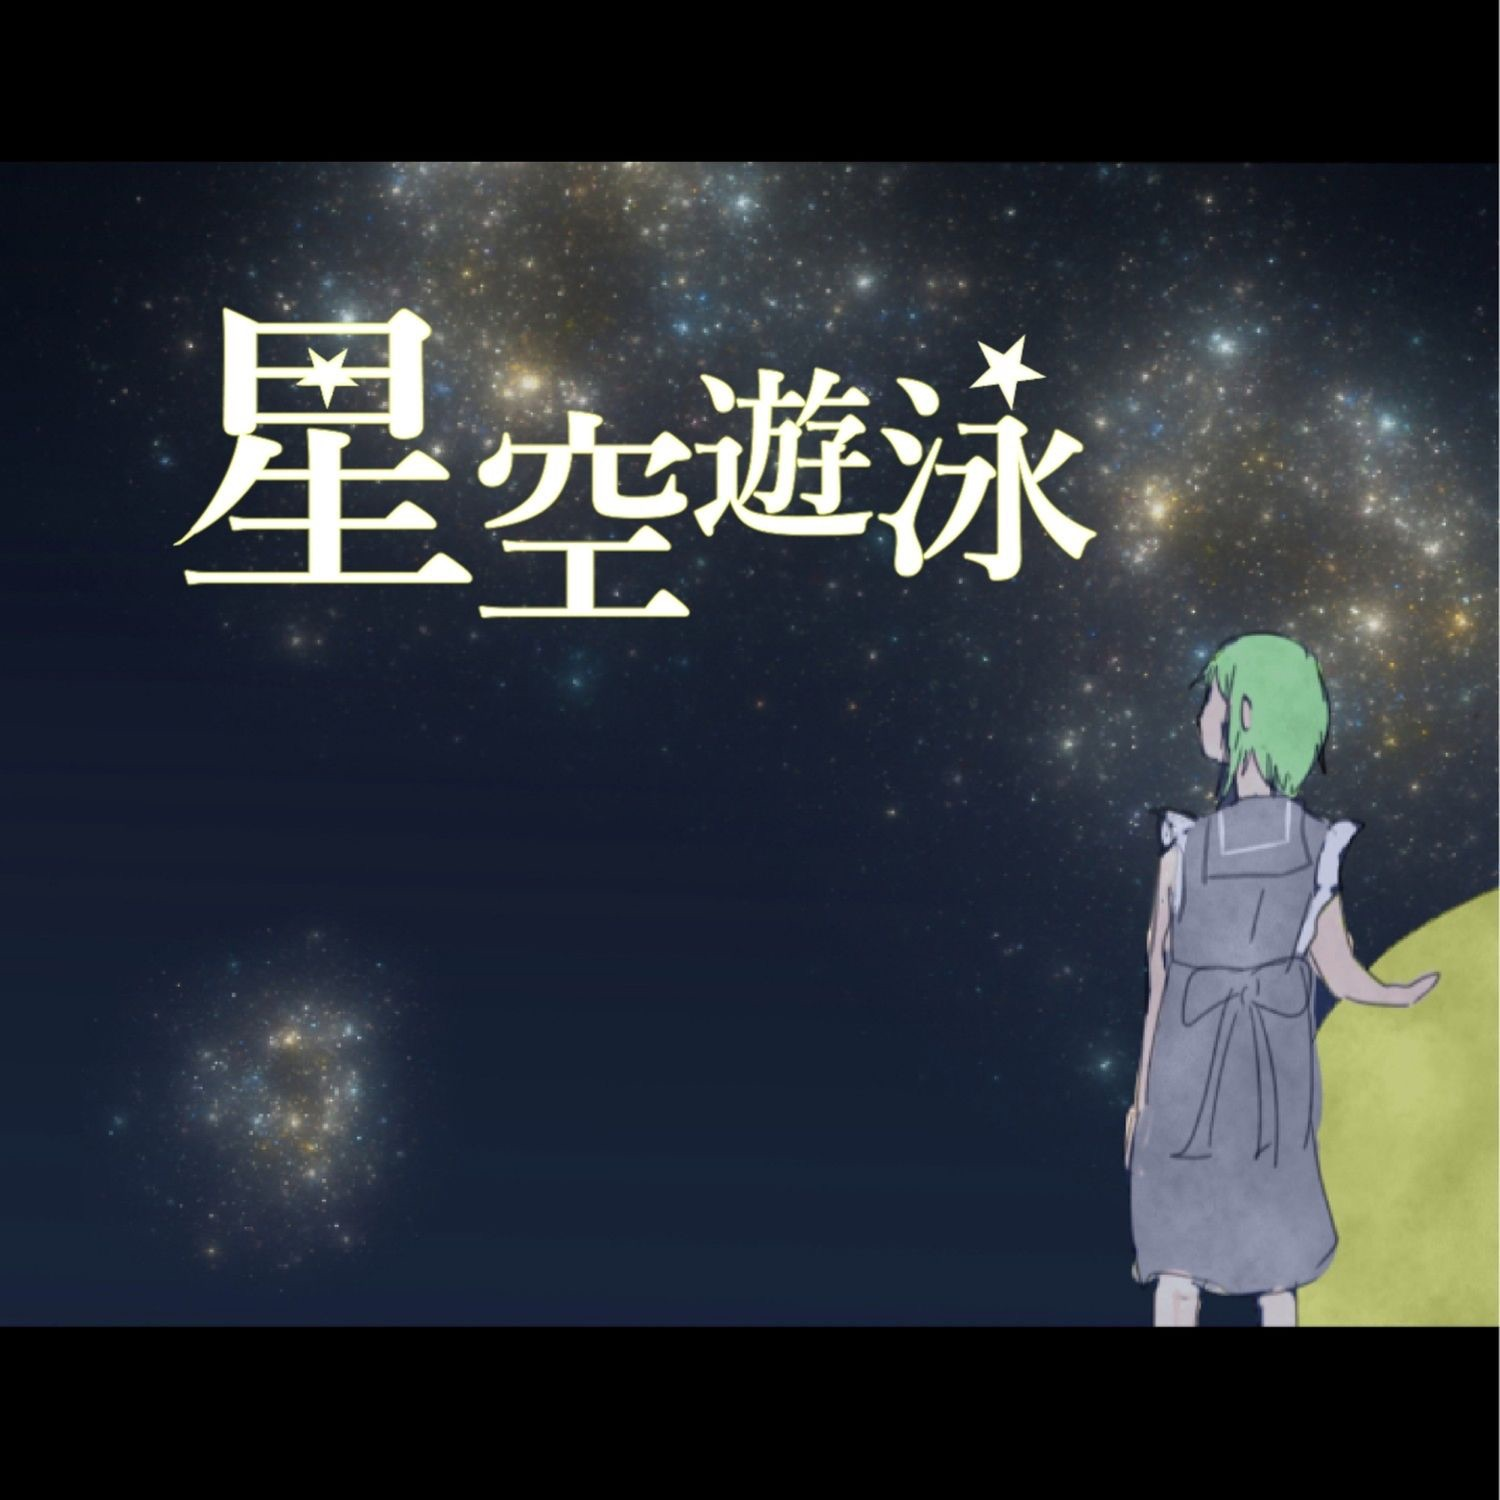 Starry Sky Swimming (feat. GUMI) - Single